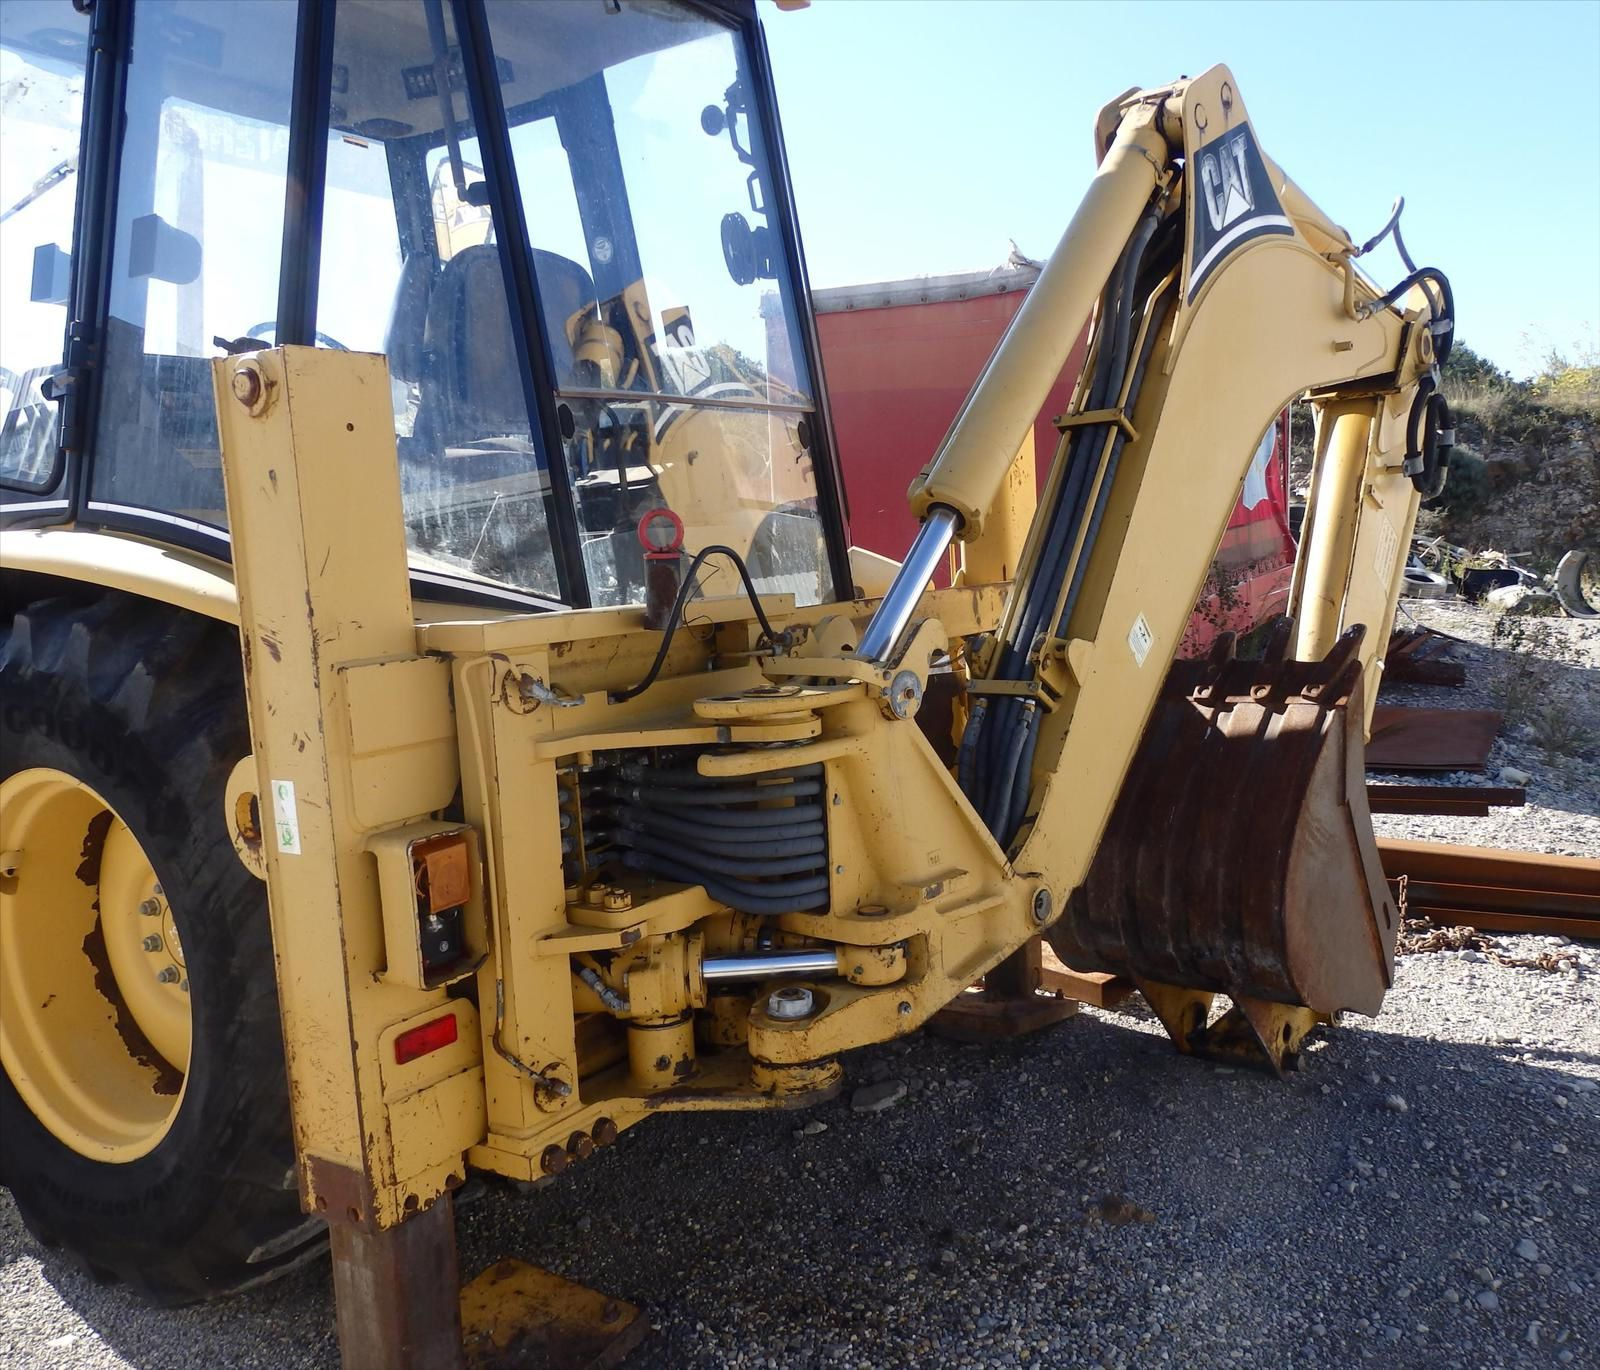 Tractopelle Caterpillar 4x4 CAT 180C Tel: 0608066192 TRANSCOMM13 Pierre BASSAT